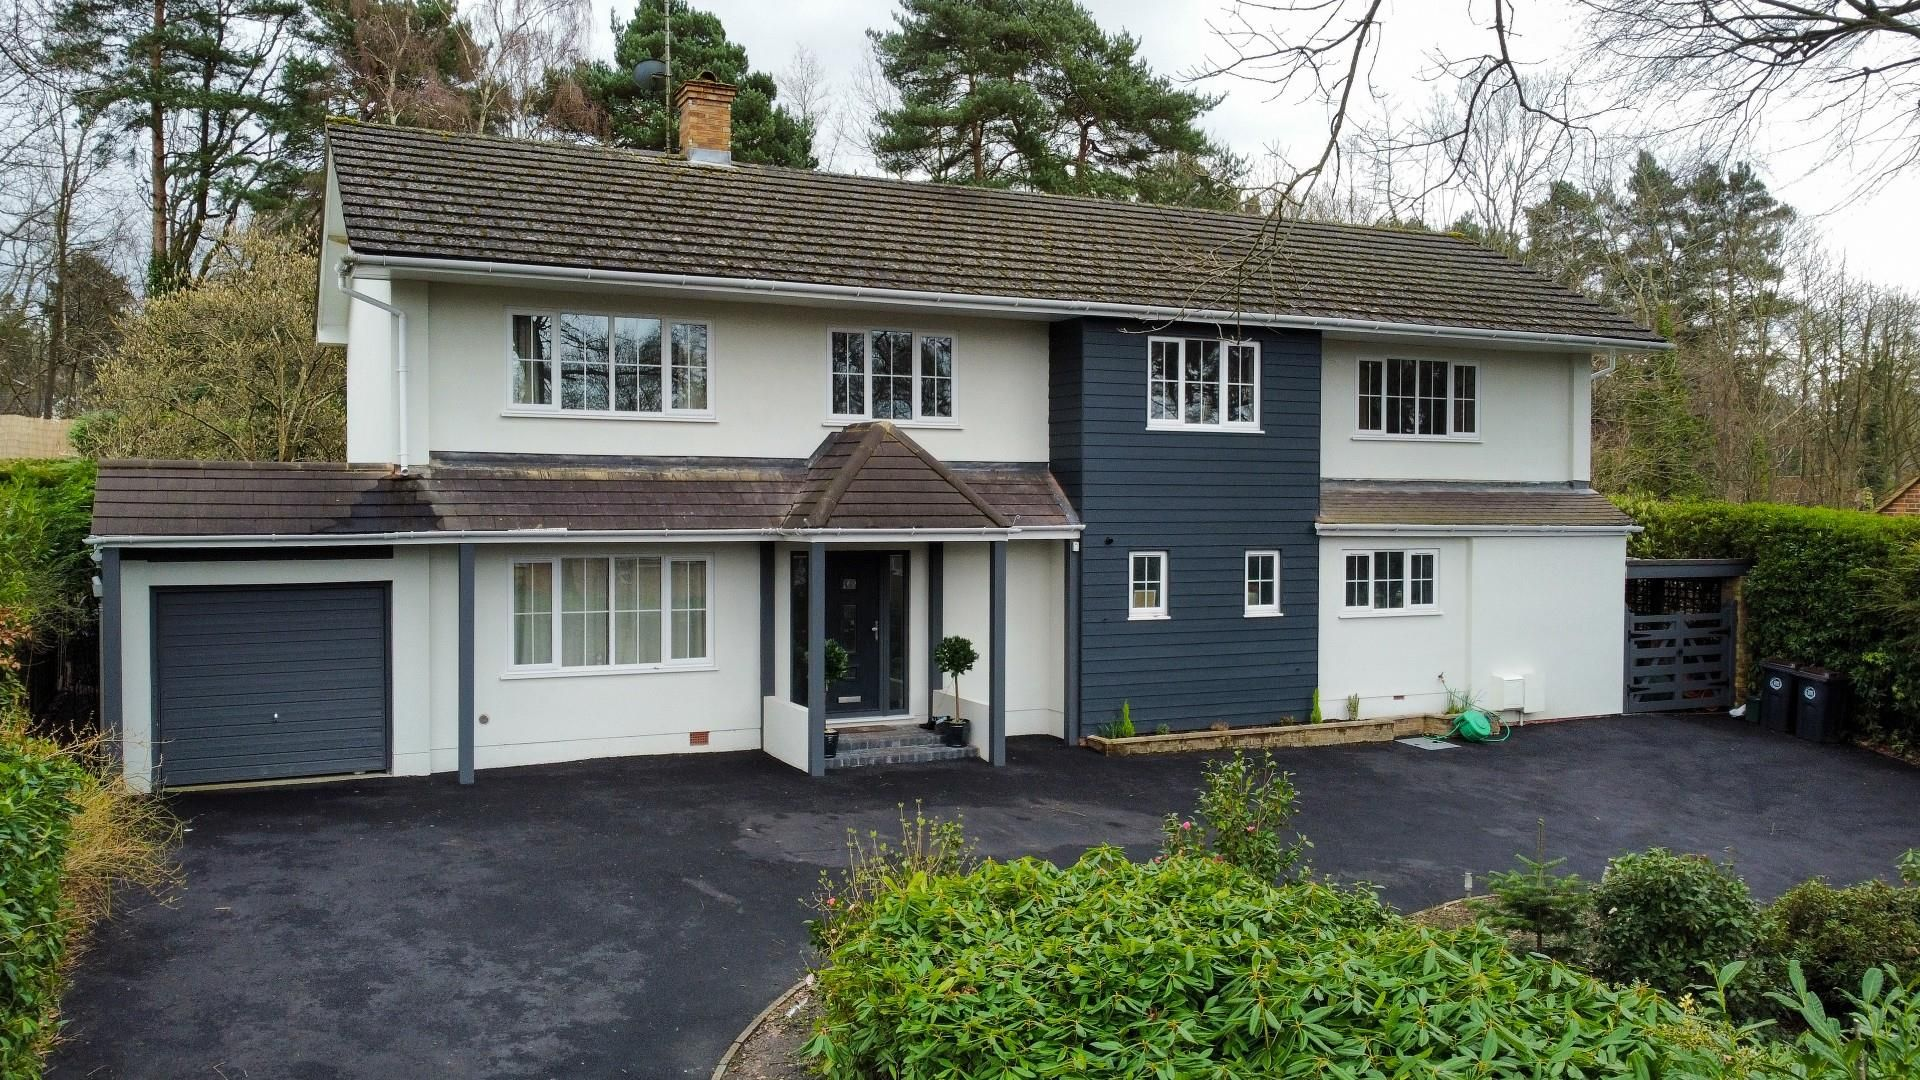 5 bed house for sale, GU15